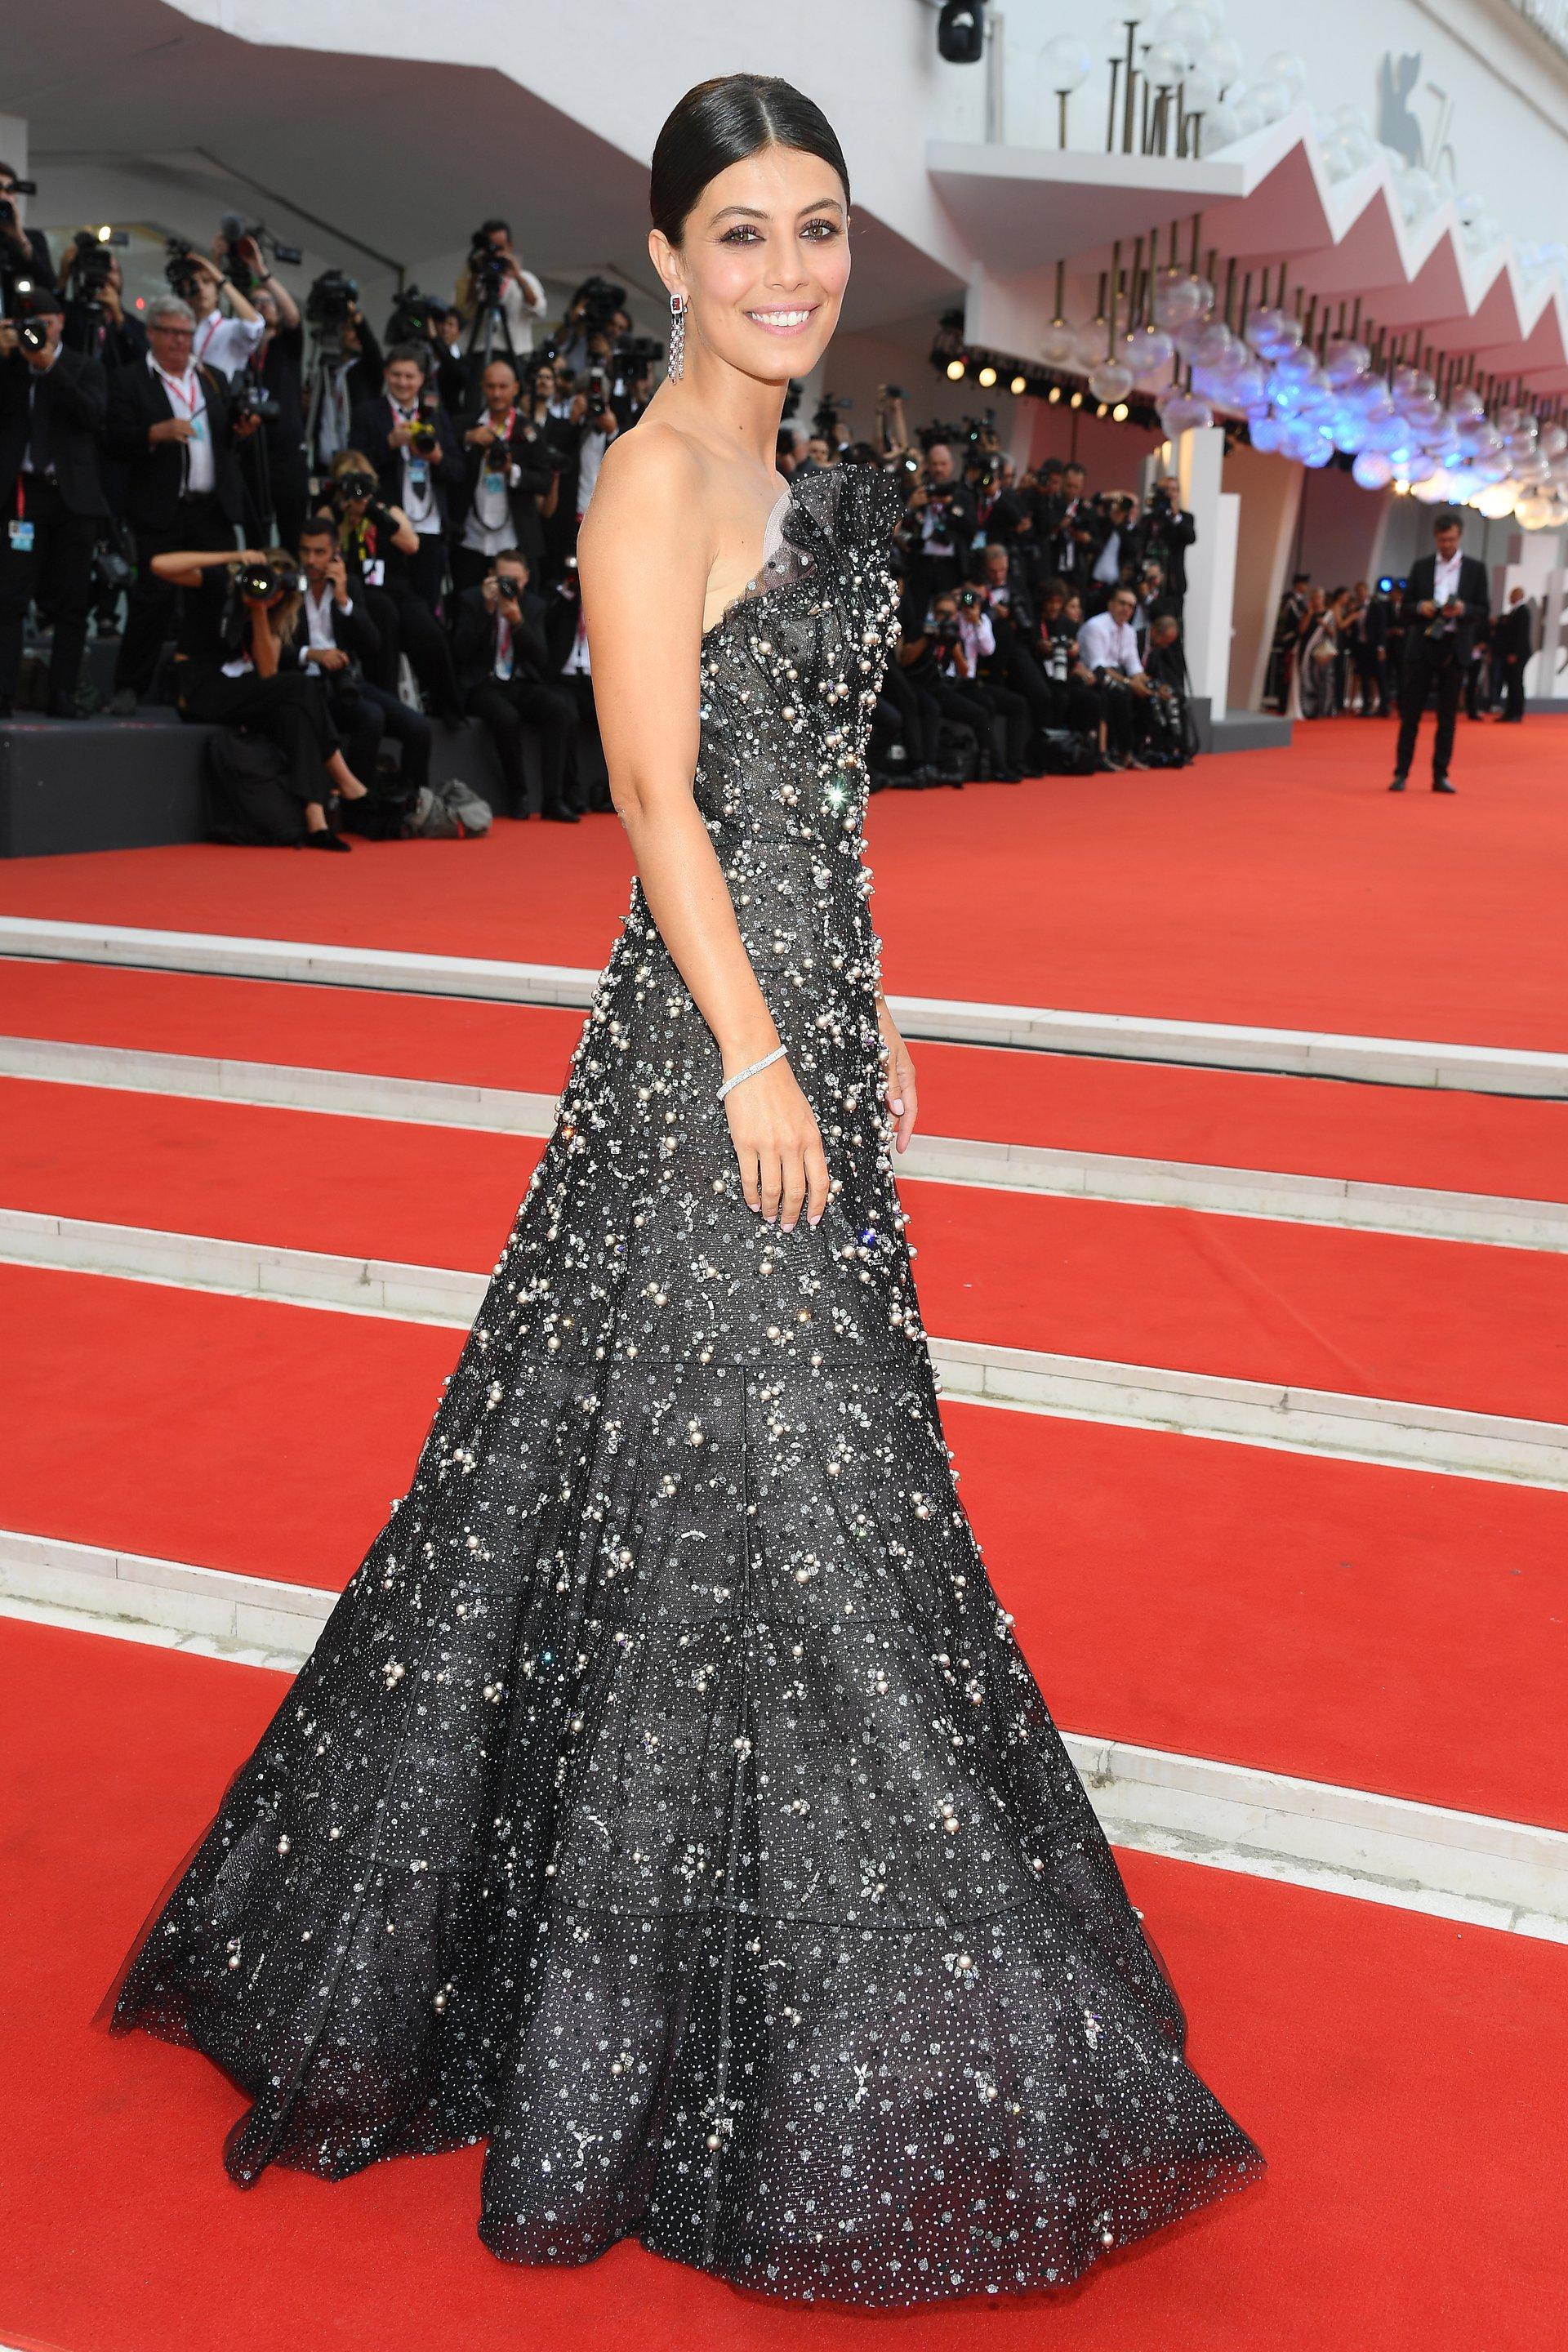 God mother of the 76th Venice International Film Festival, Alessandra Mastronardi wore the 101 Feuille for the Opening Ceremony